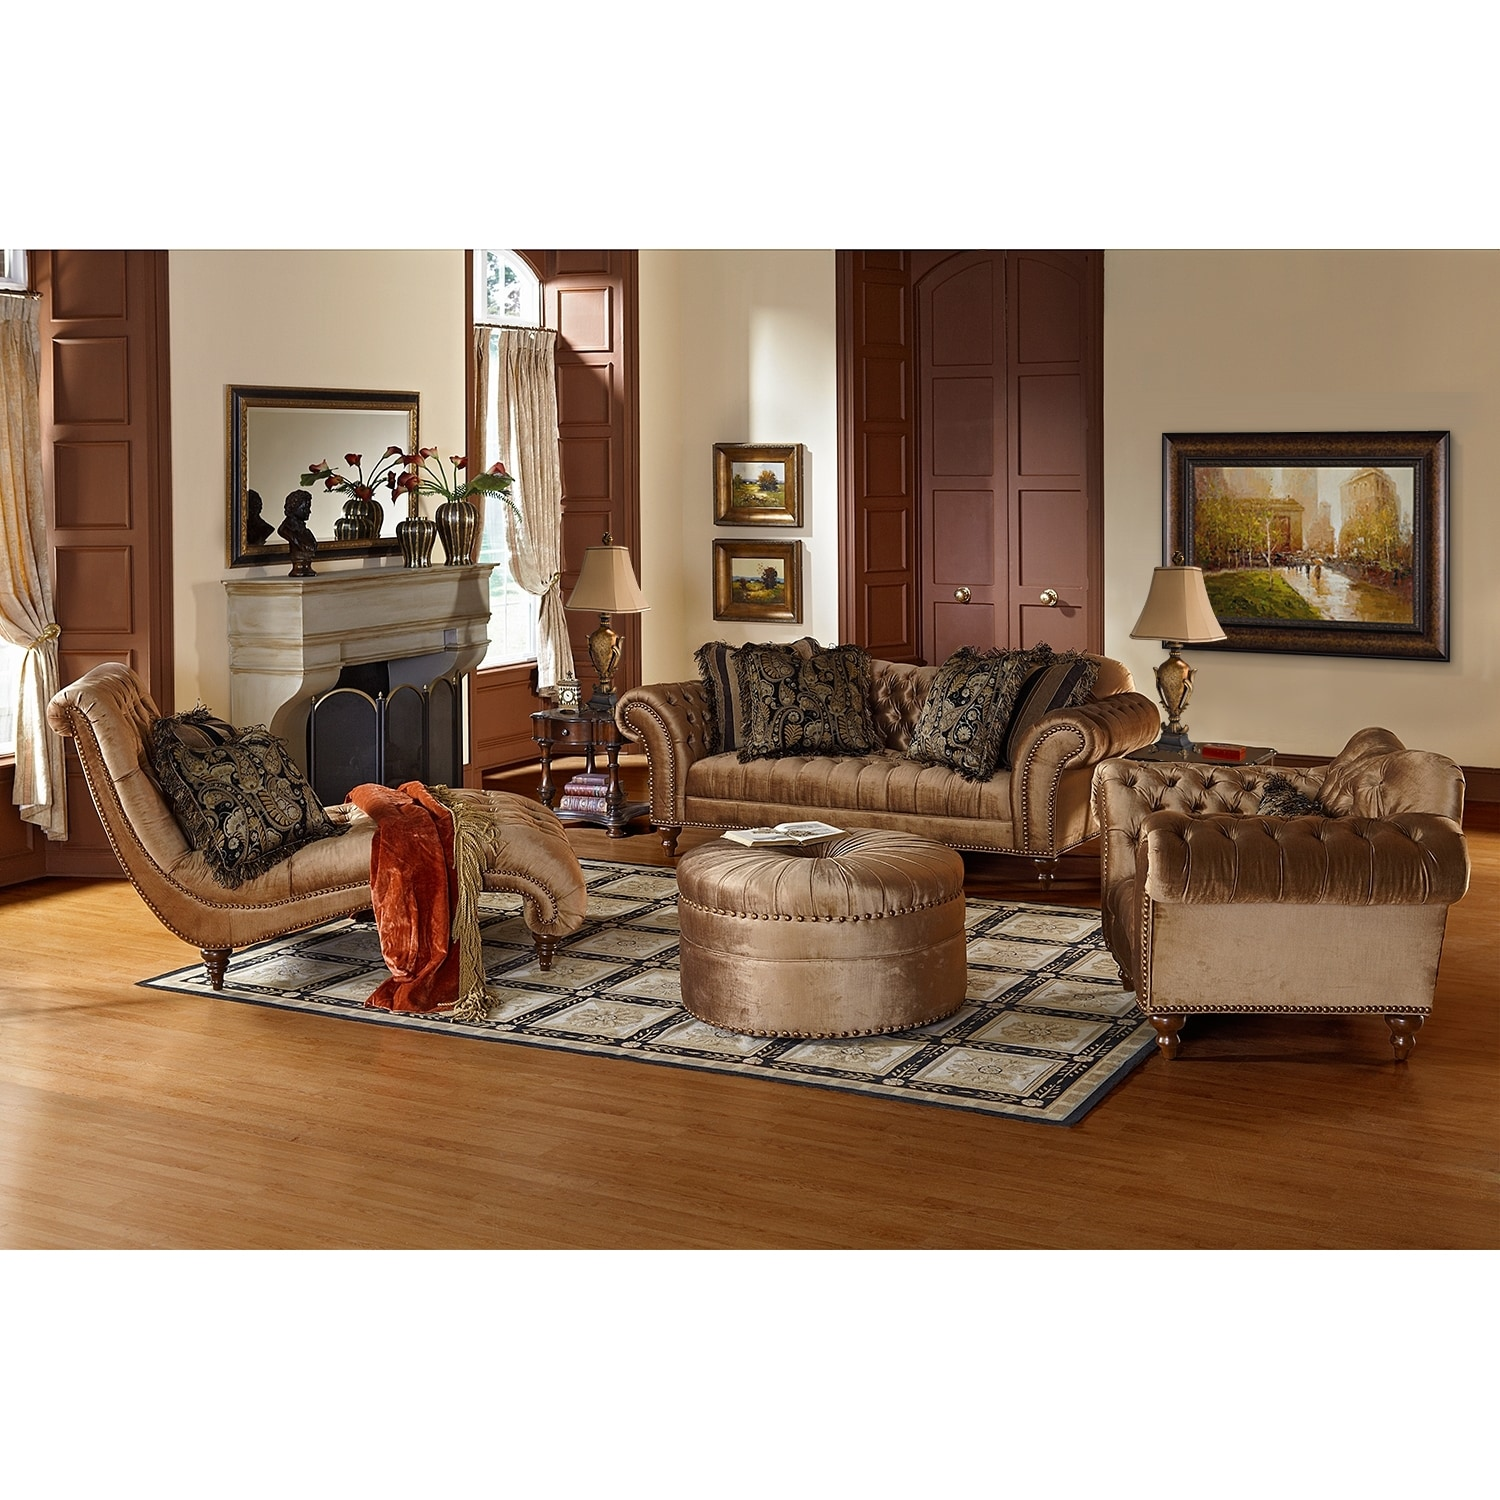 Brittney upholstery chaise value city furniture for Chaise living room